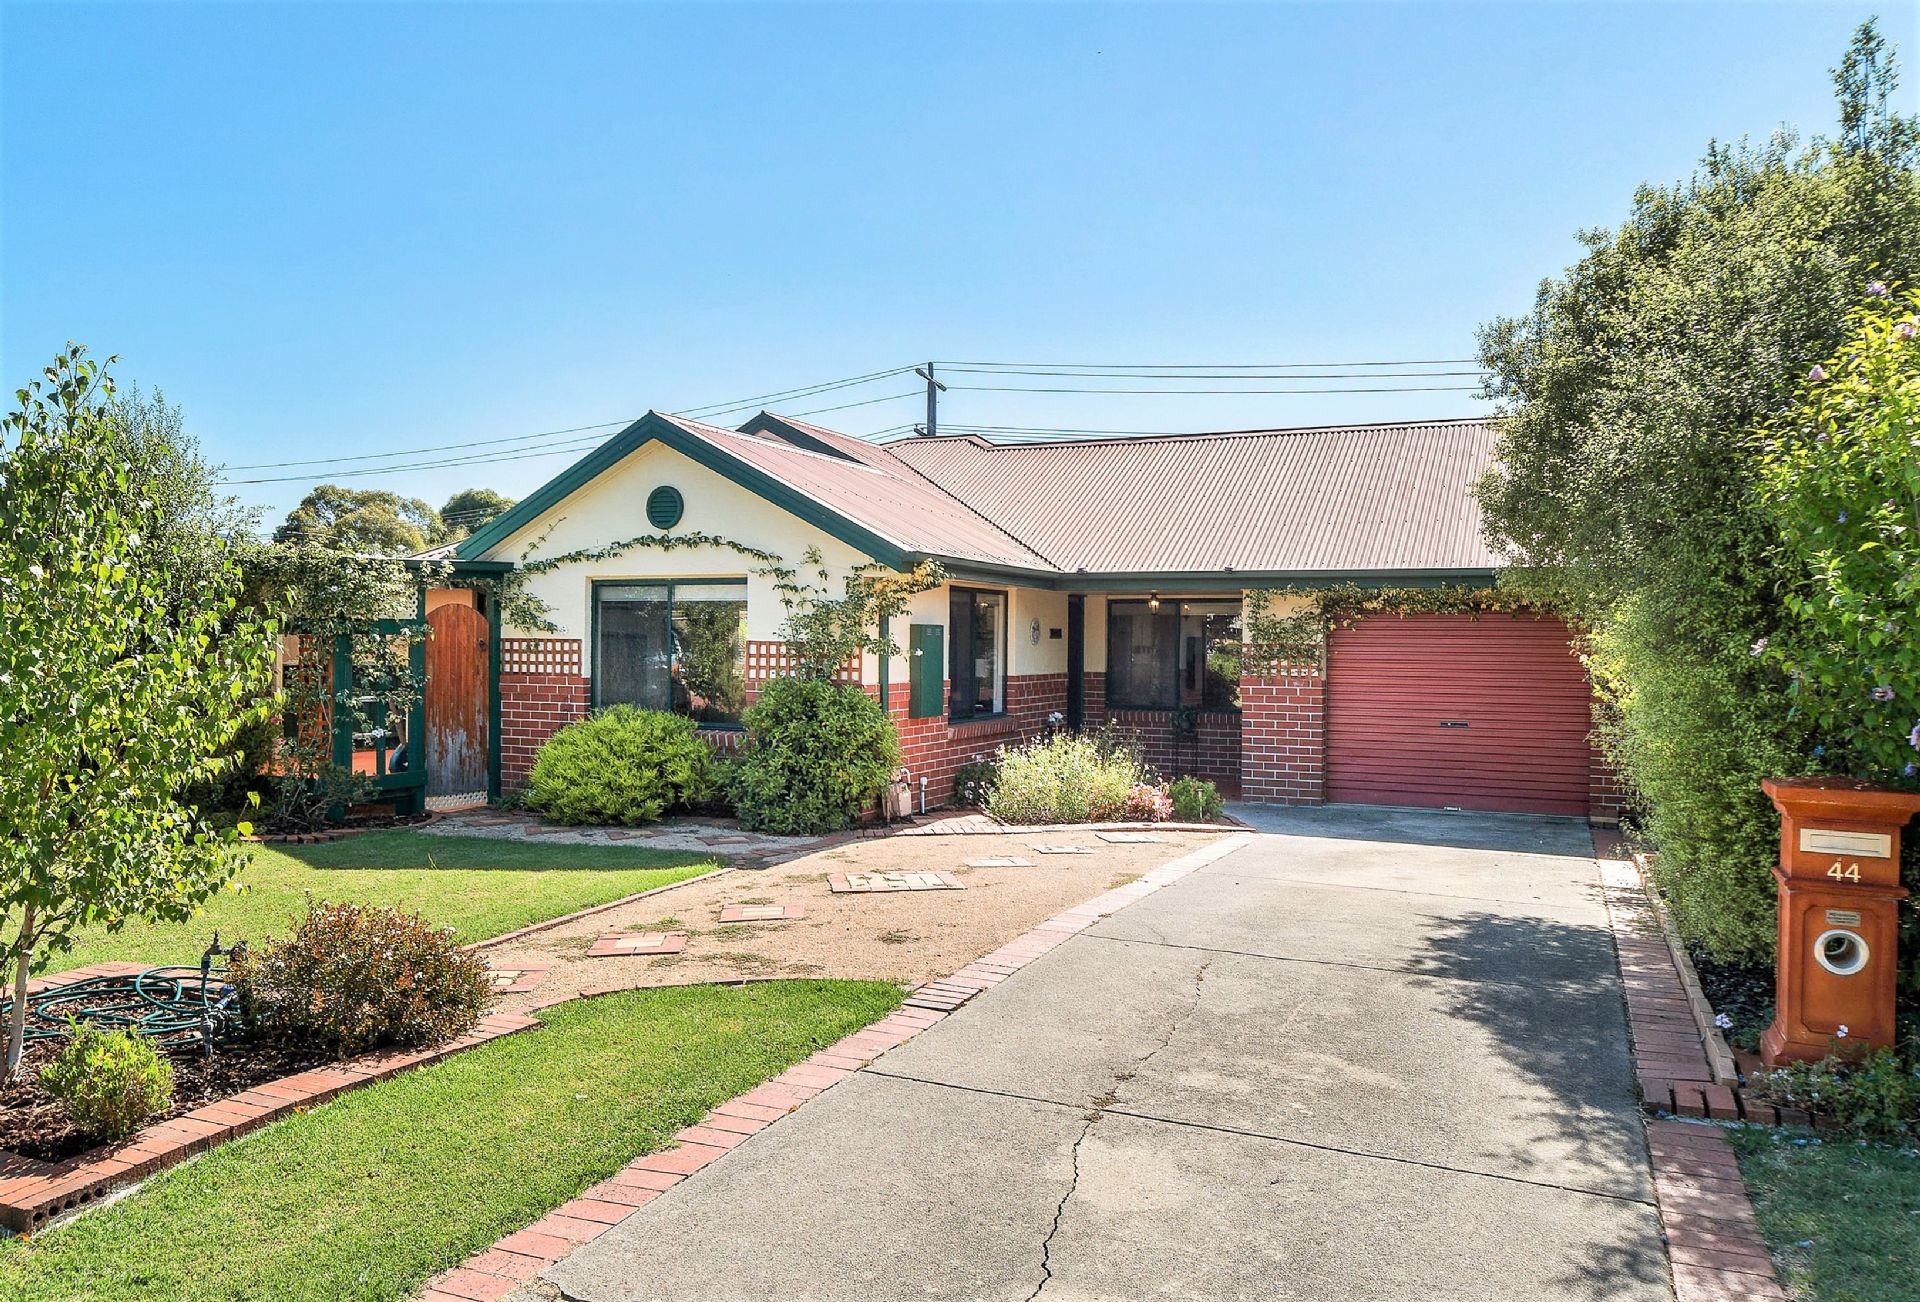 44 Fairway Drive, SAFETY BEACH, VIC, 3936 - Image